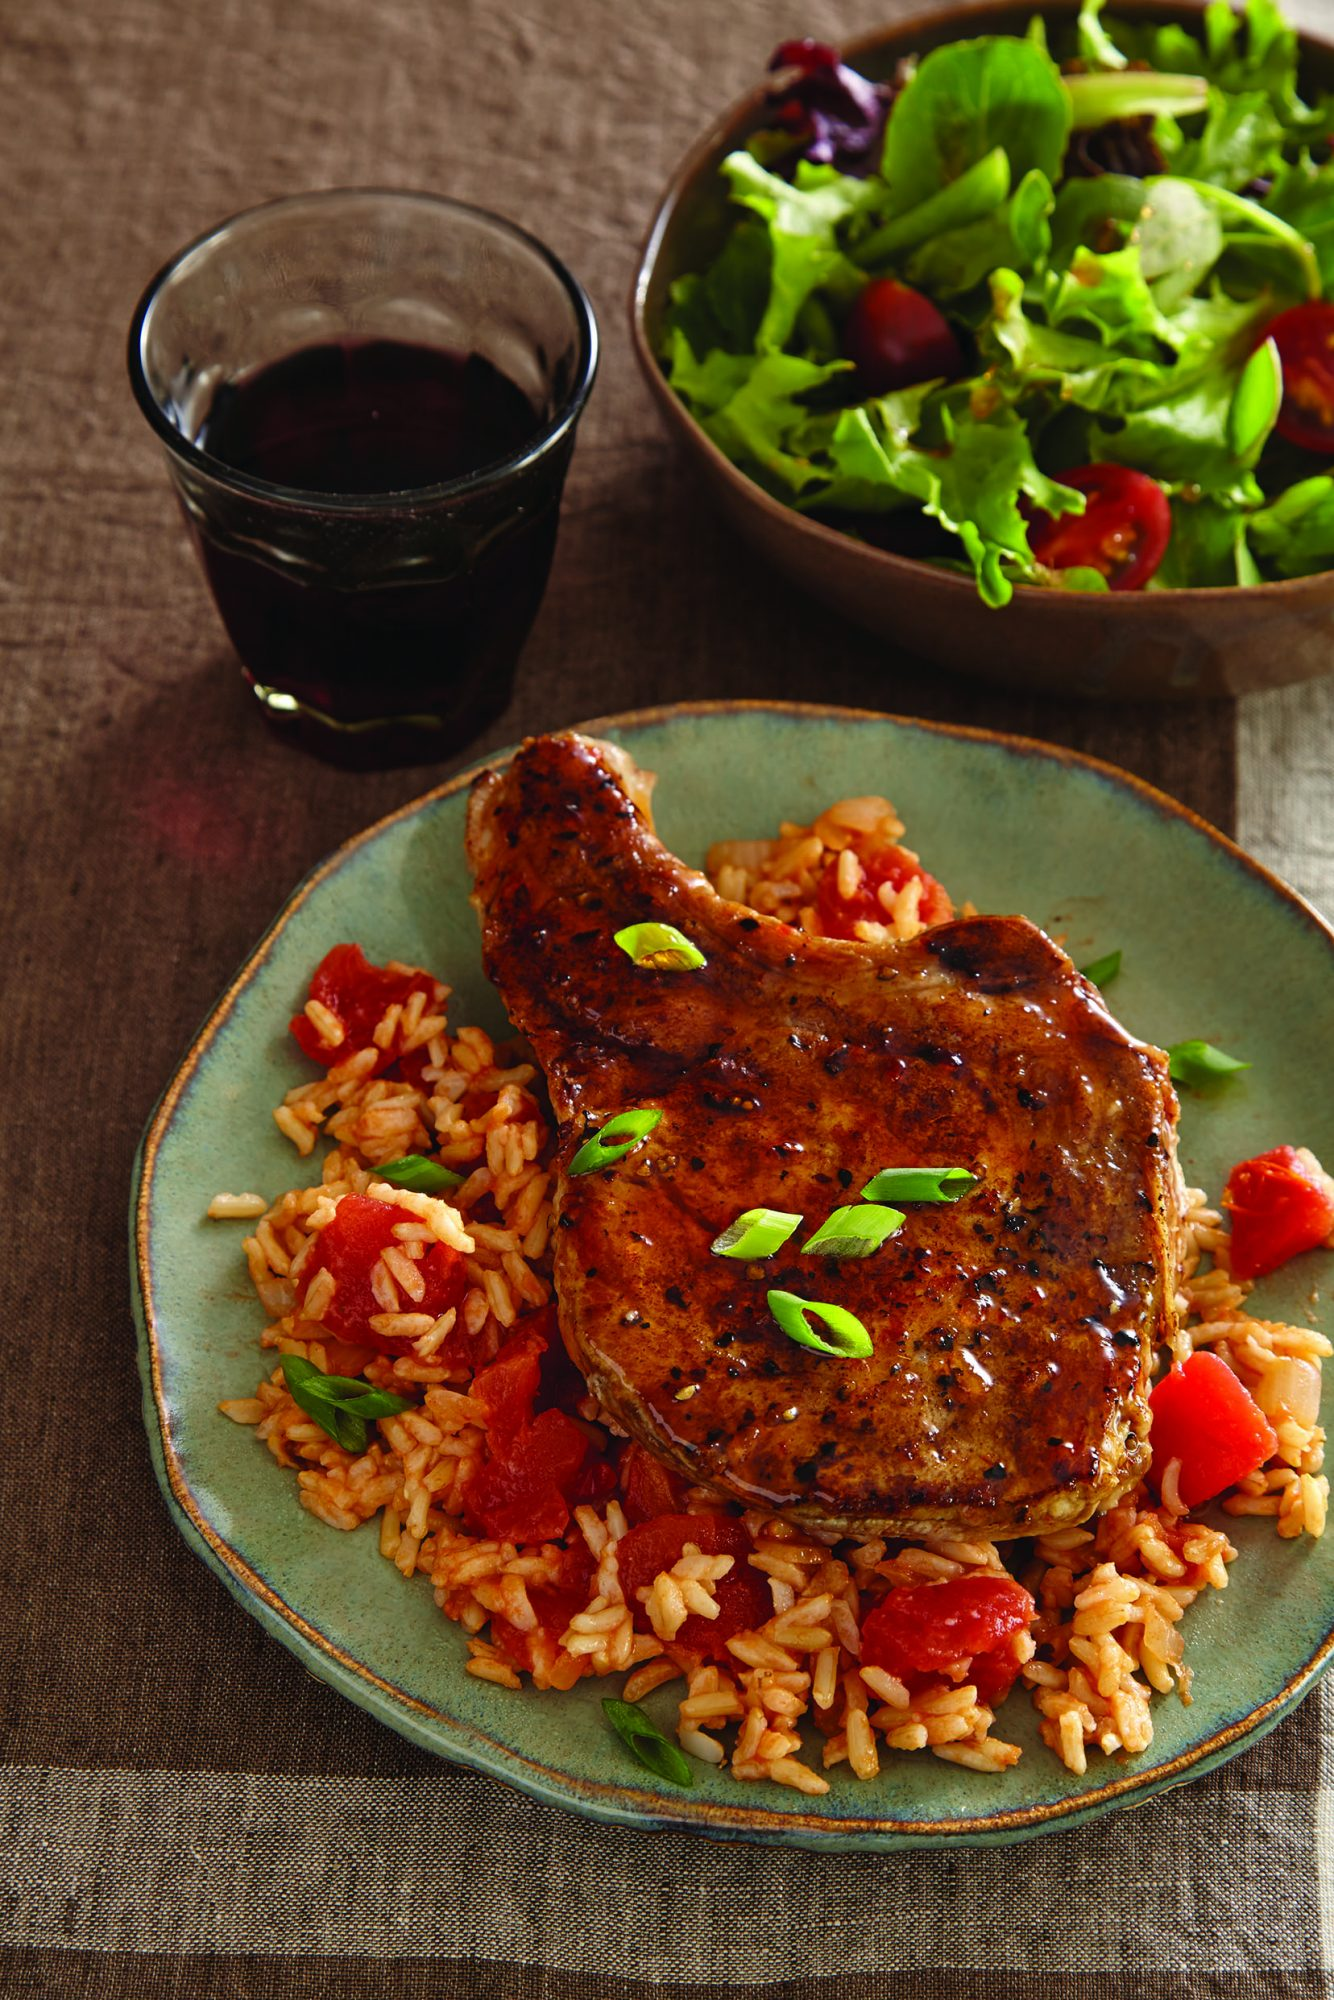 Jalapeño-Glazed Pork Chops and Rice